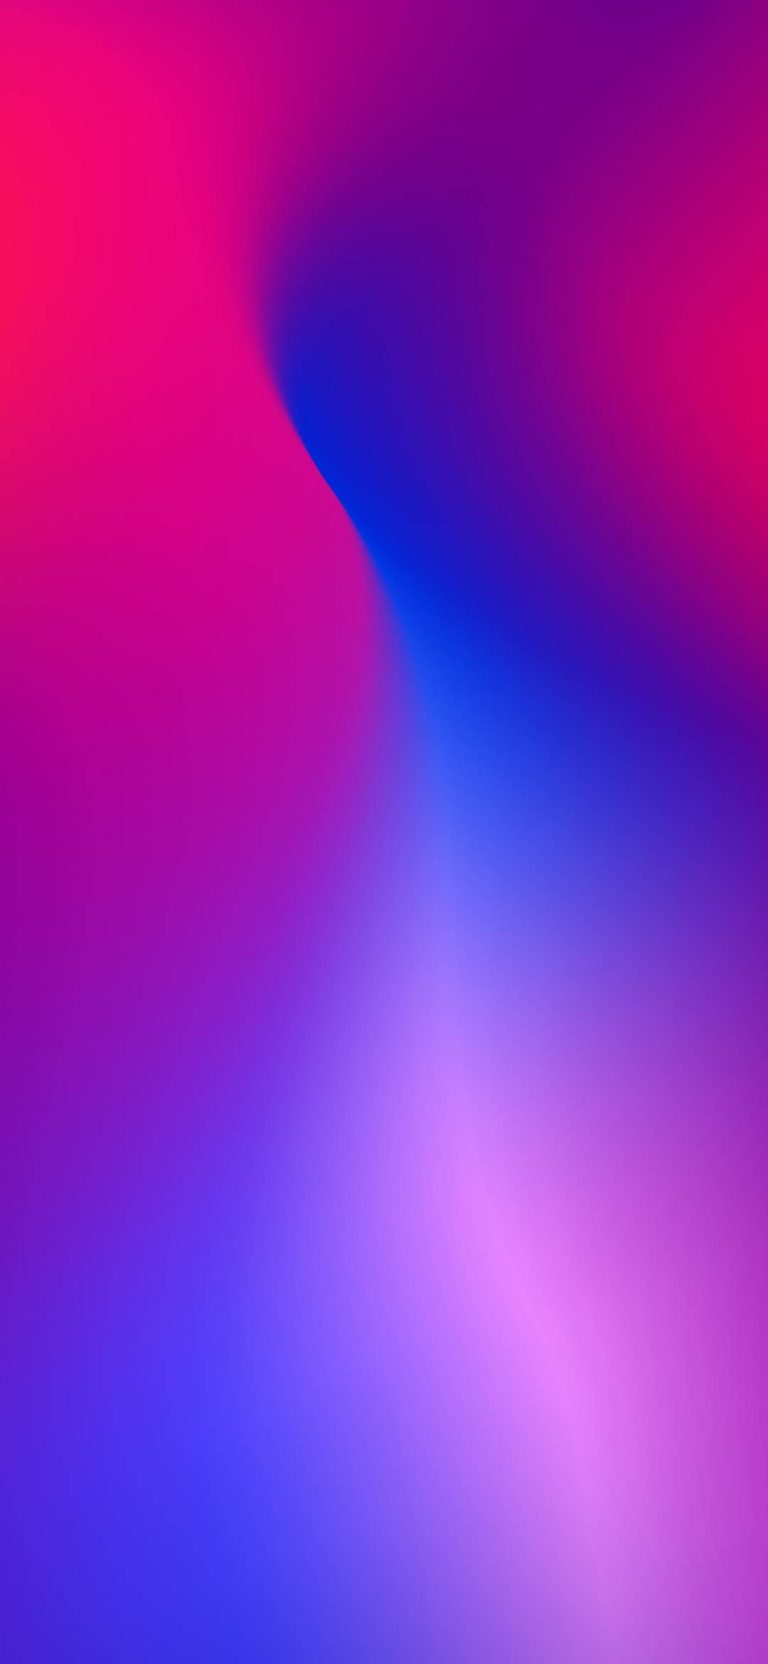 Oppo R17 Stock Wallpaper 04 1080x2340 768x1664